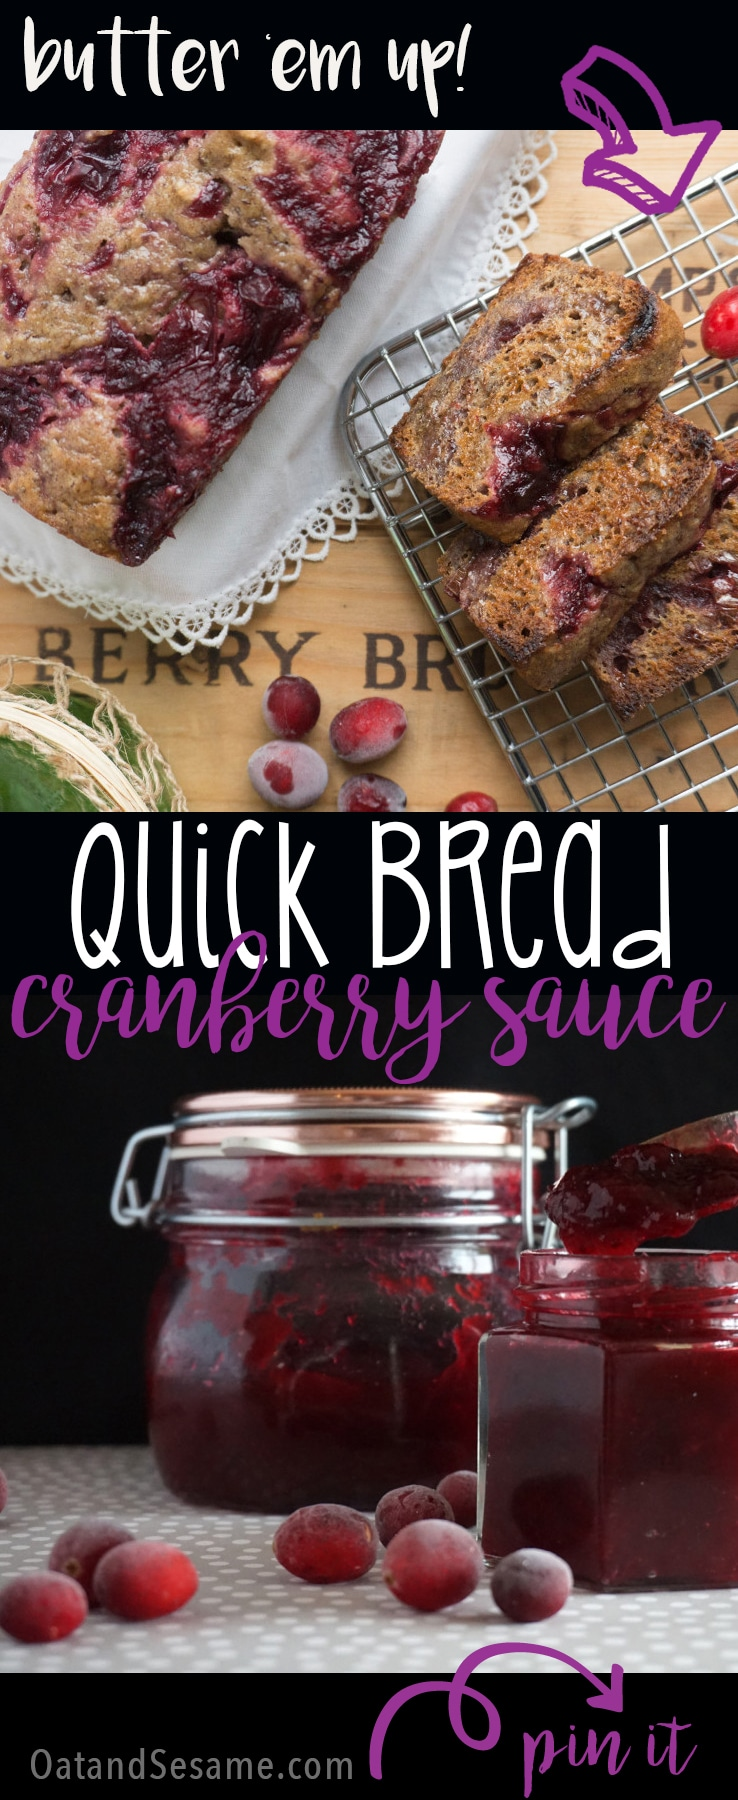 A fantastic recipe for Cranberry Pomegranate Sauce for Thanksgiving! Plus when you need a way to use up all that CRANBERRY SAUCE...Make QUICK BREAD! | #THANKSGIVING | #SAUCE | #CRANBERRIES | #BAKING | #QUICK BREAD | #Recipes at OatandSesame.com